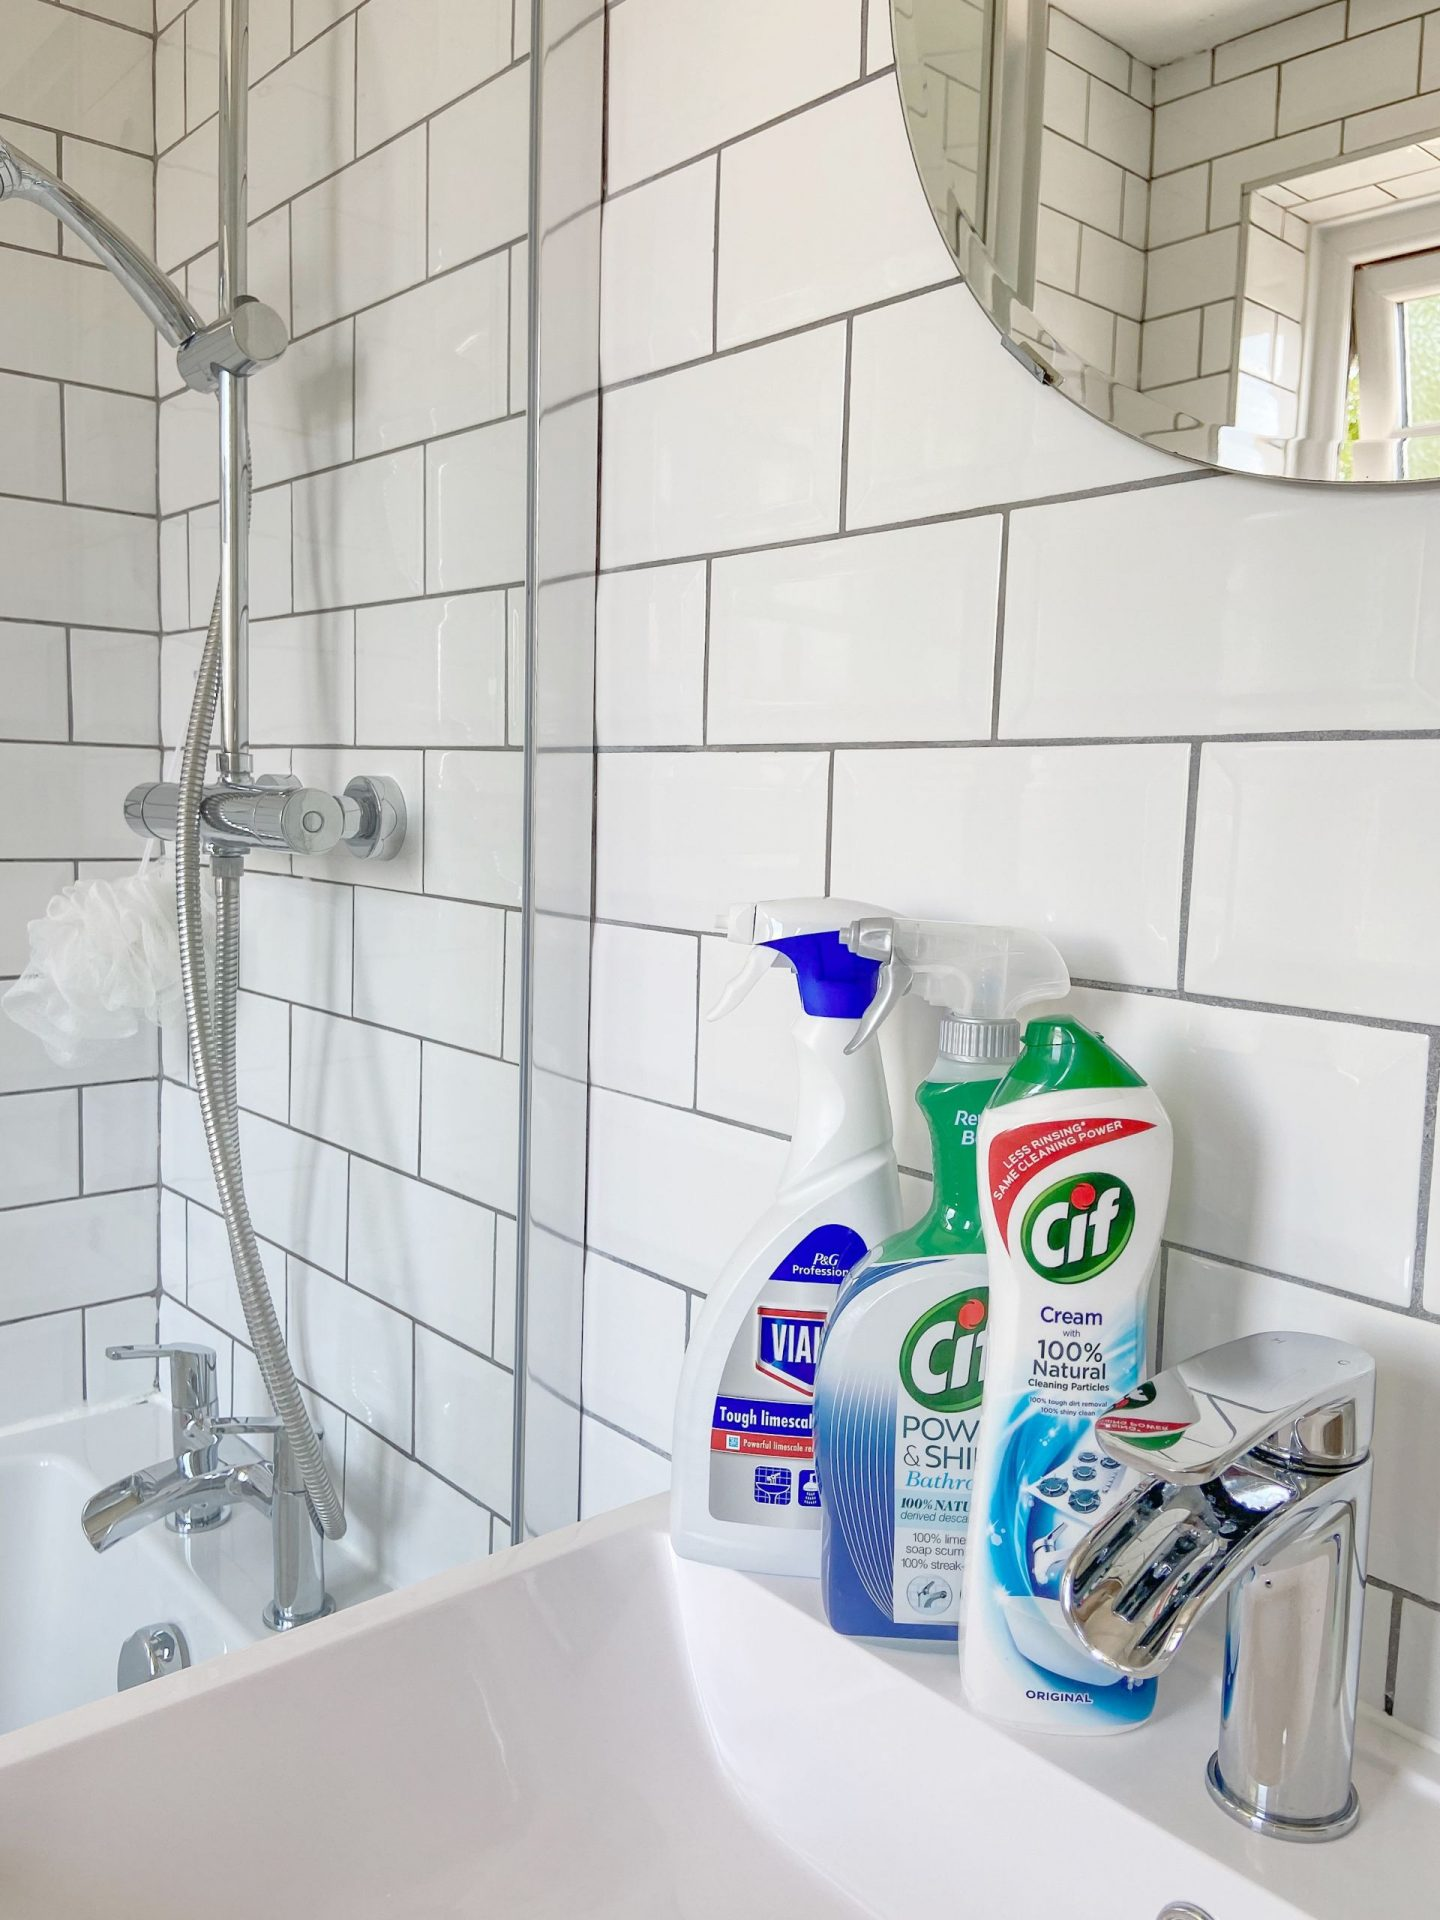 Cleaning Products for Bathroom